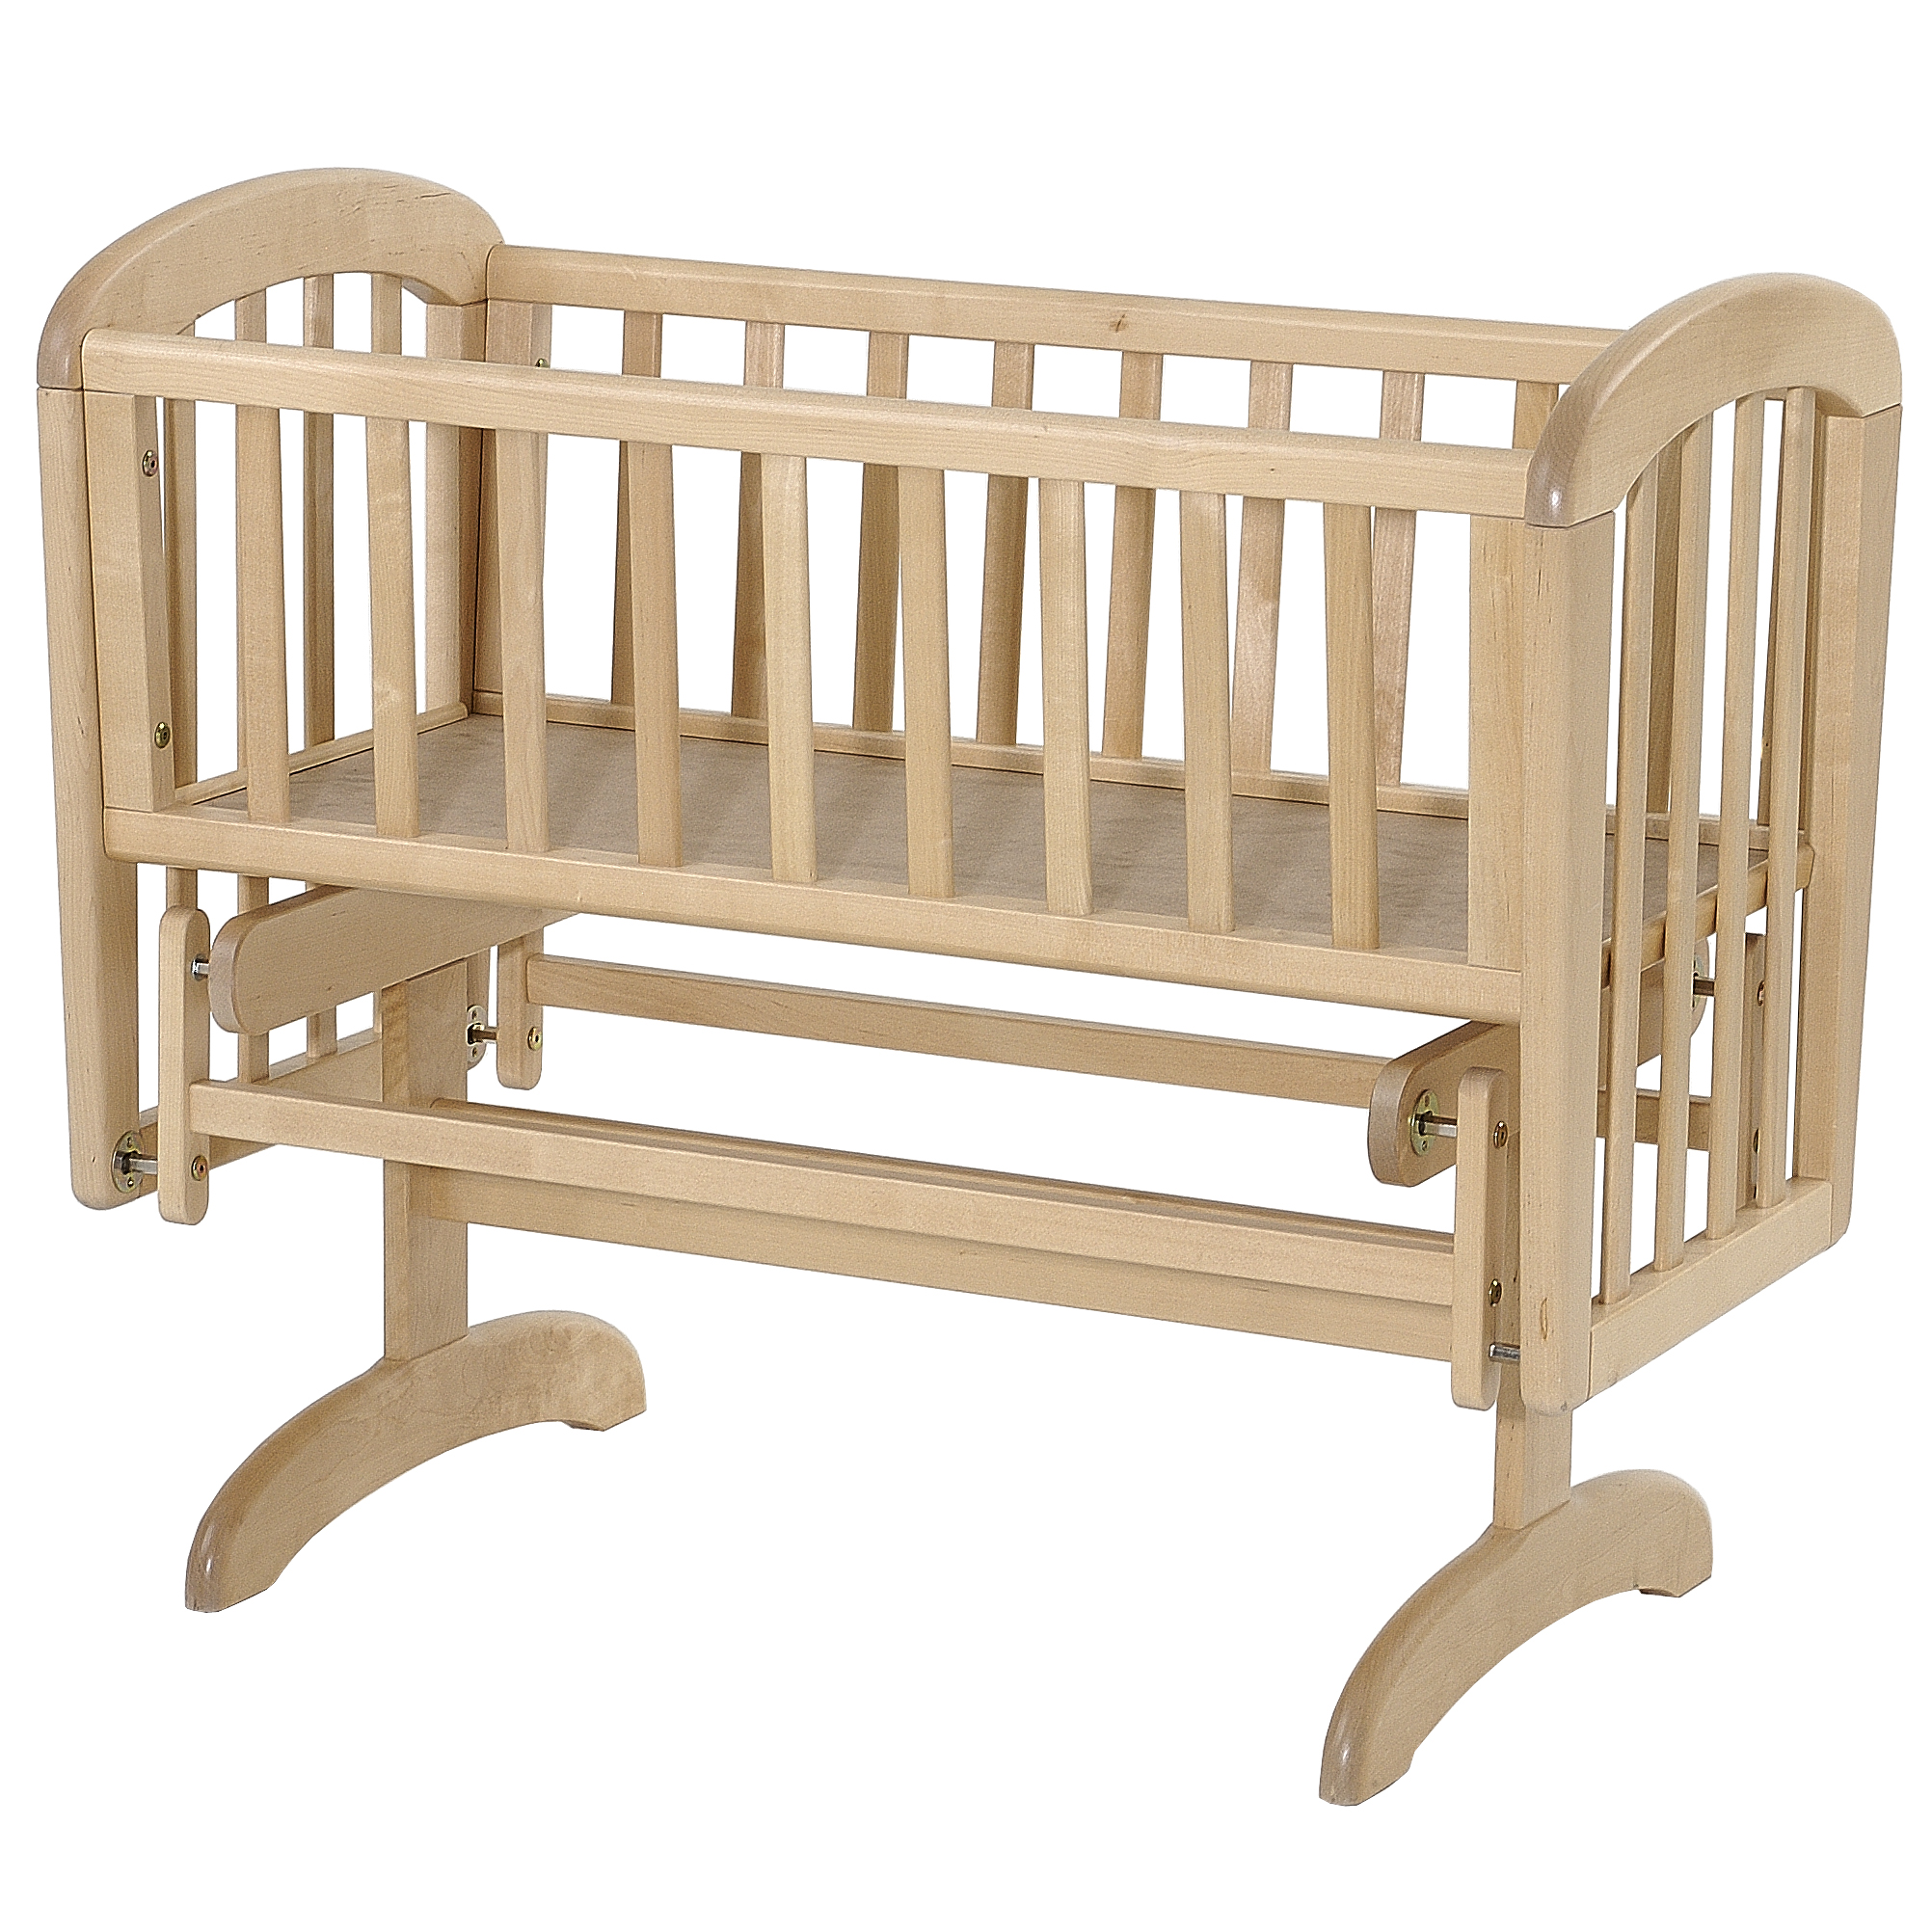 Baby cribs rocking - Babies Sleep Well In Cribs Initially As They Provide A Small Sleeping Environment Which Helps Them To Feel Secure The Rocking Or Gliding Action Of A Crib